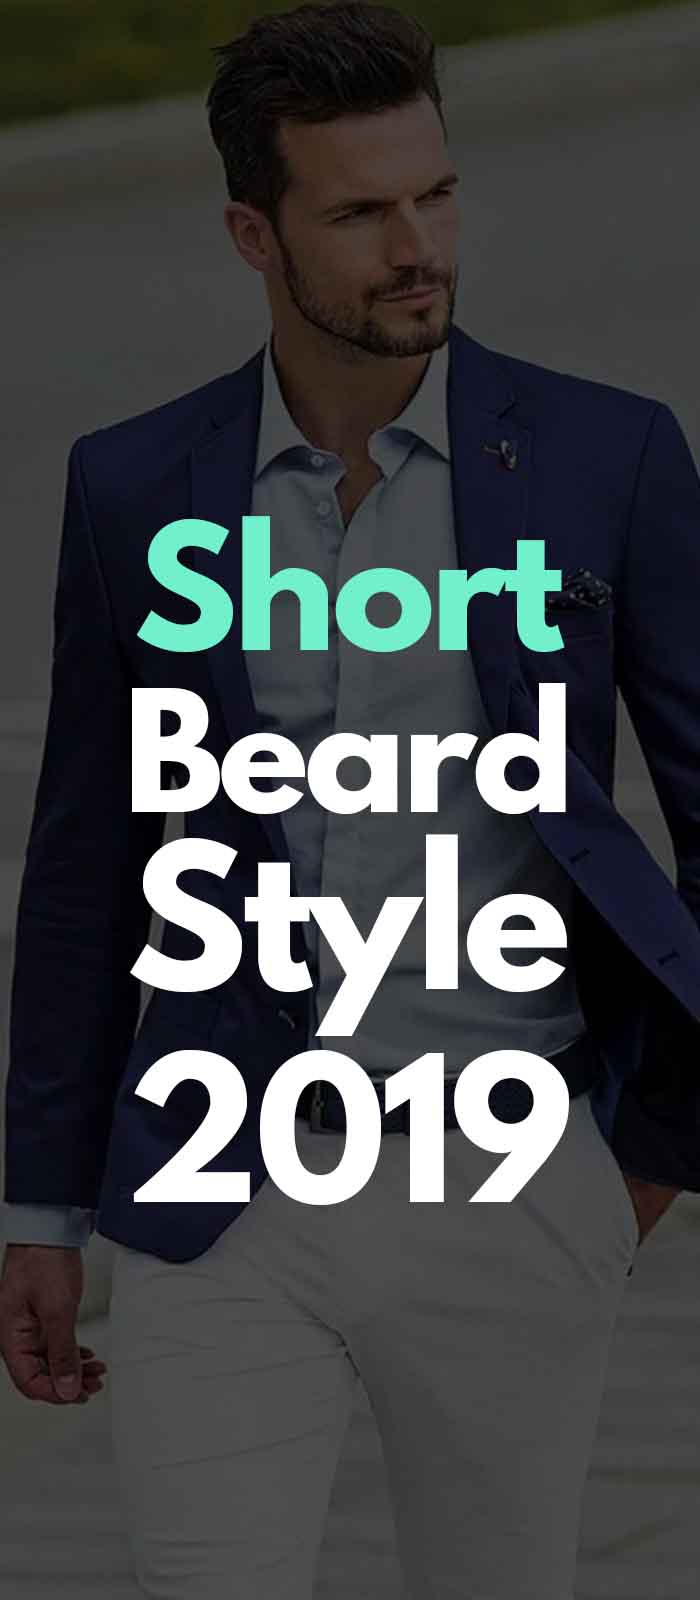 Blue jacket suit look for the short beard style!